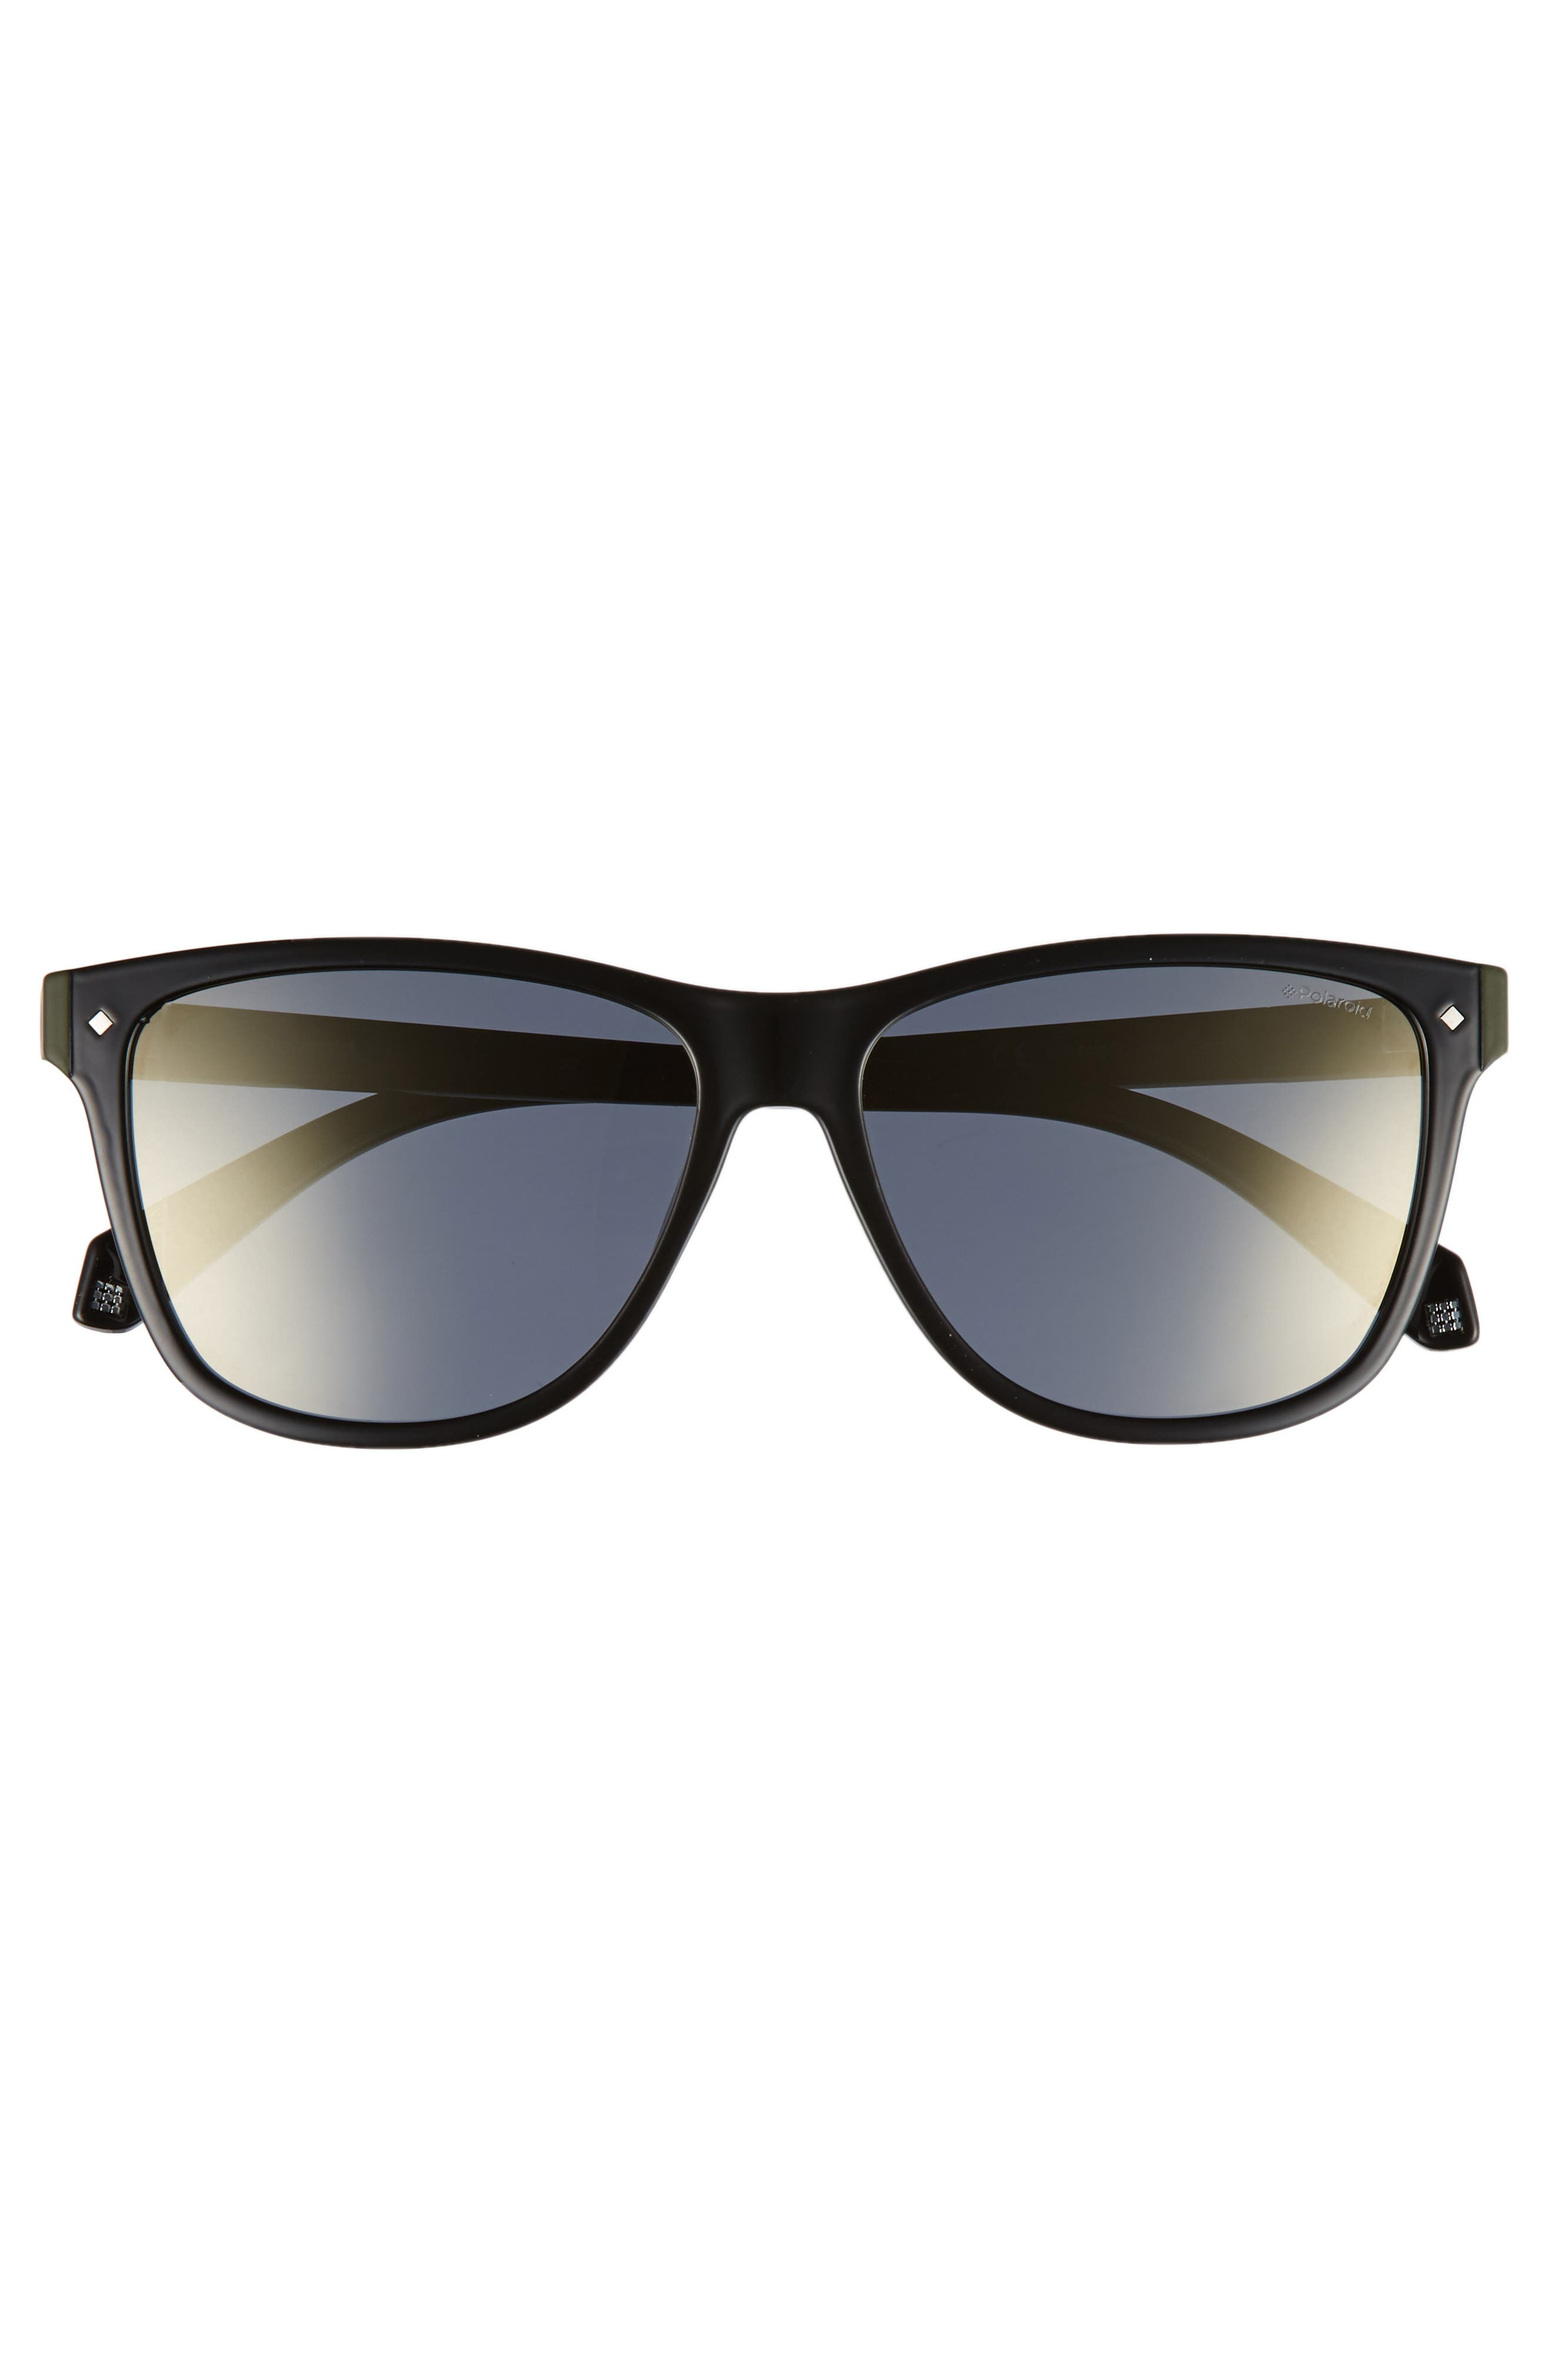 56mm Polarized Sunglasses,                             Alternate thumbnail 2, color,                             002